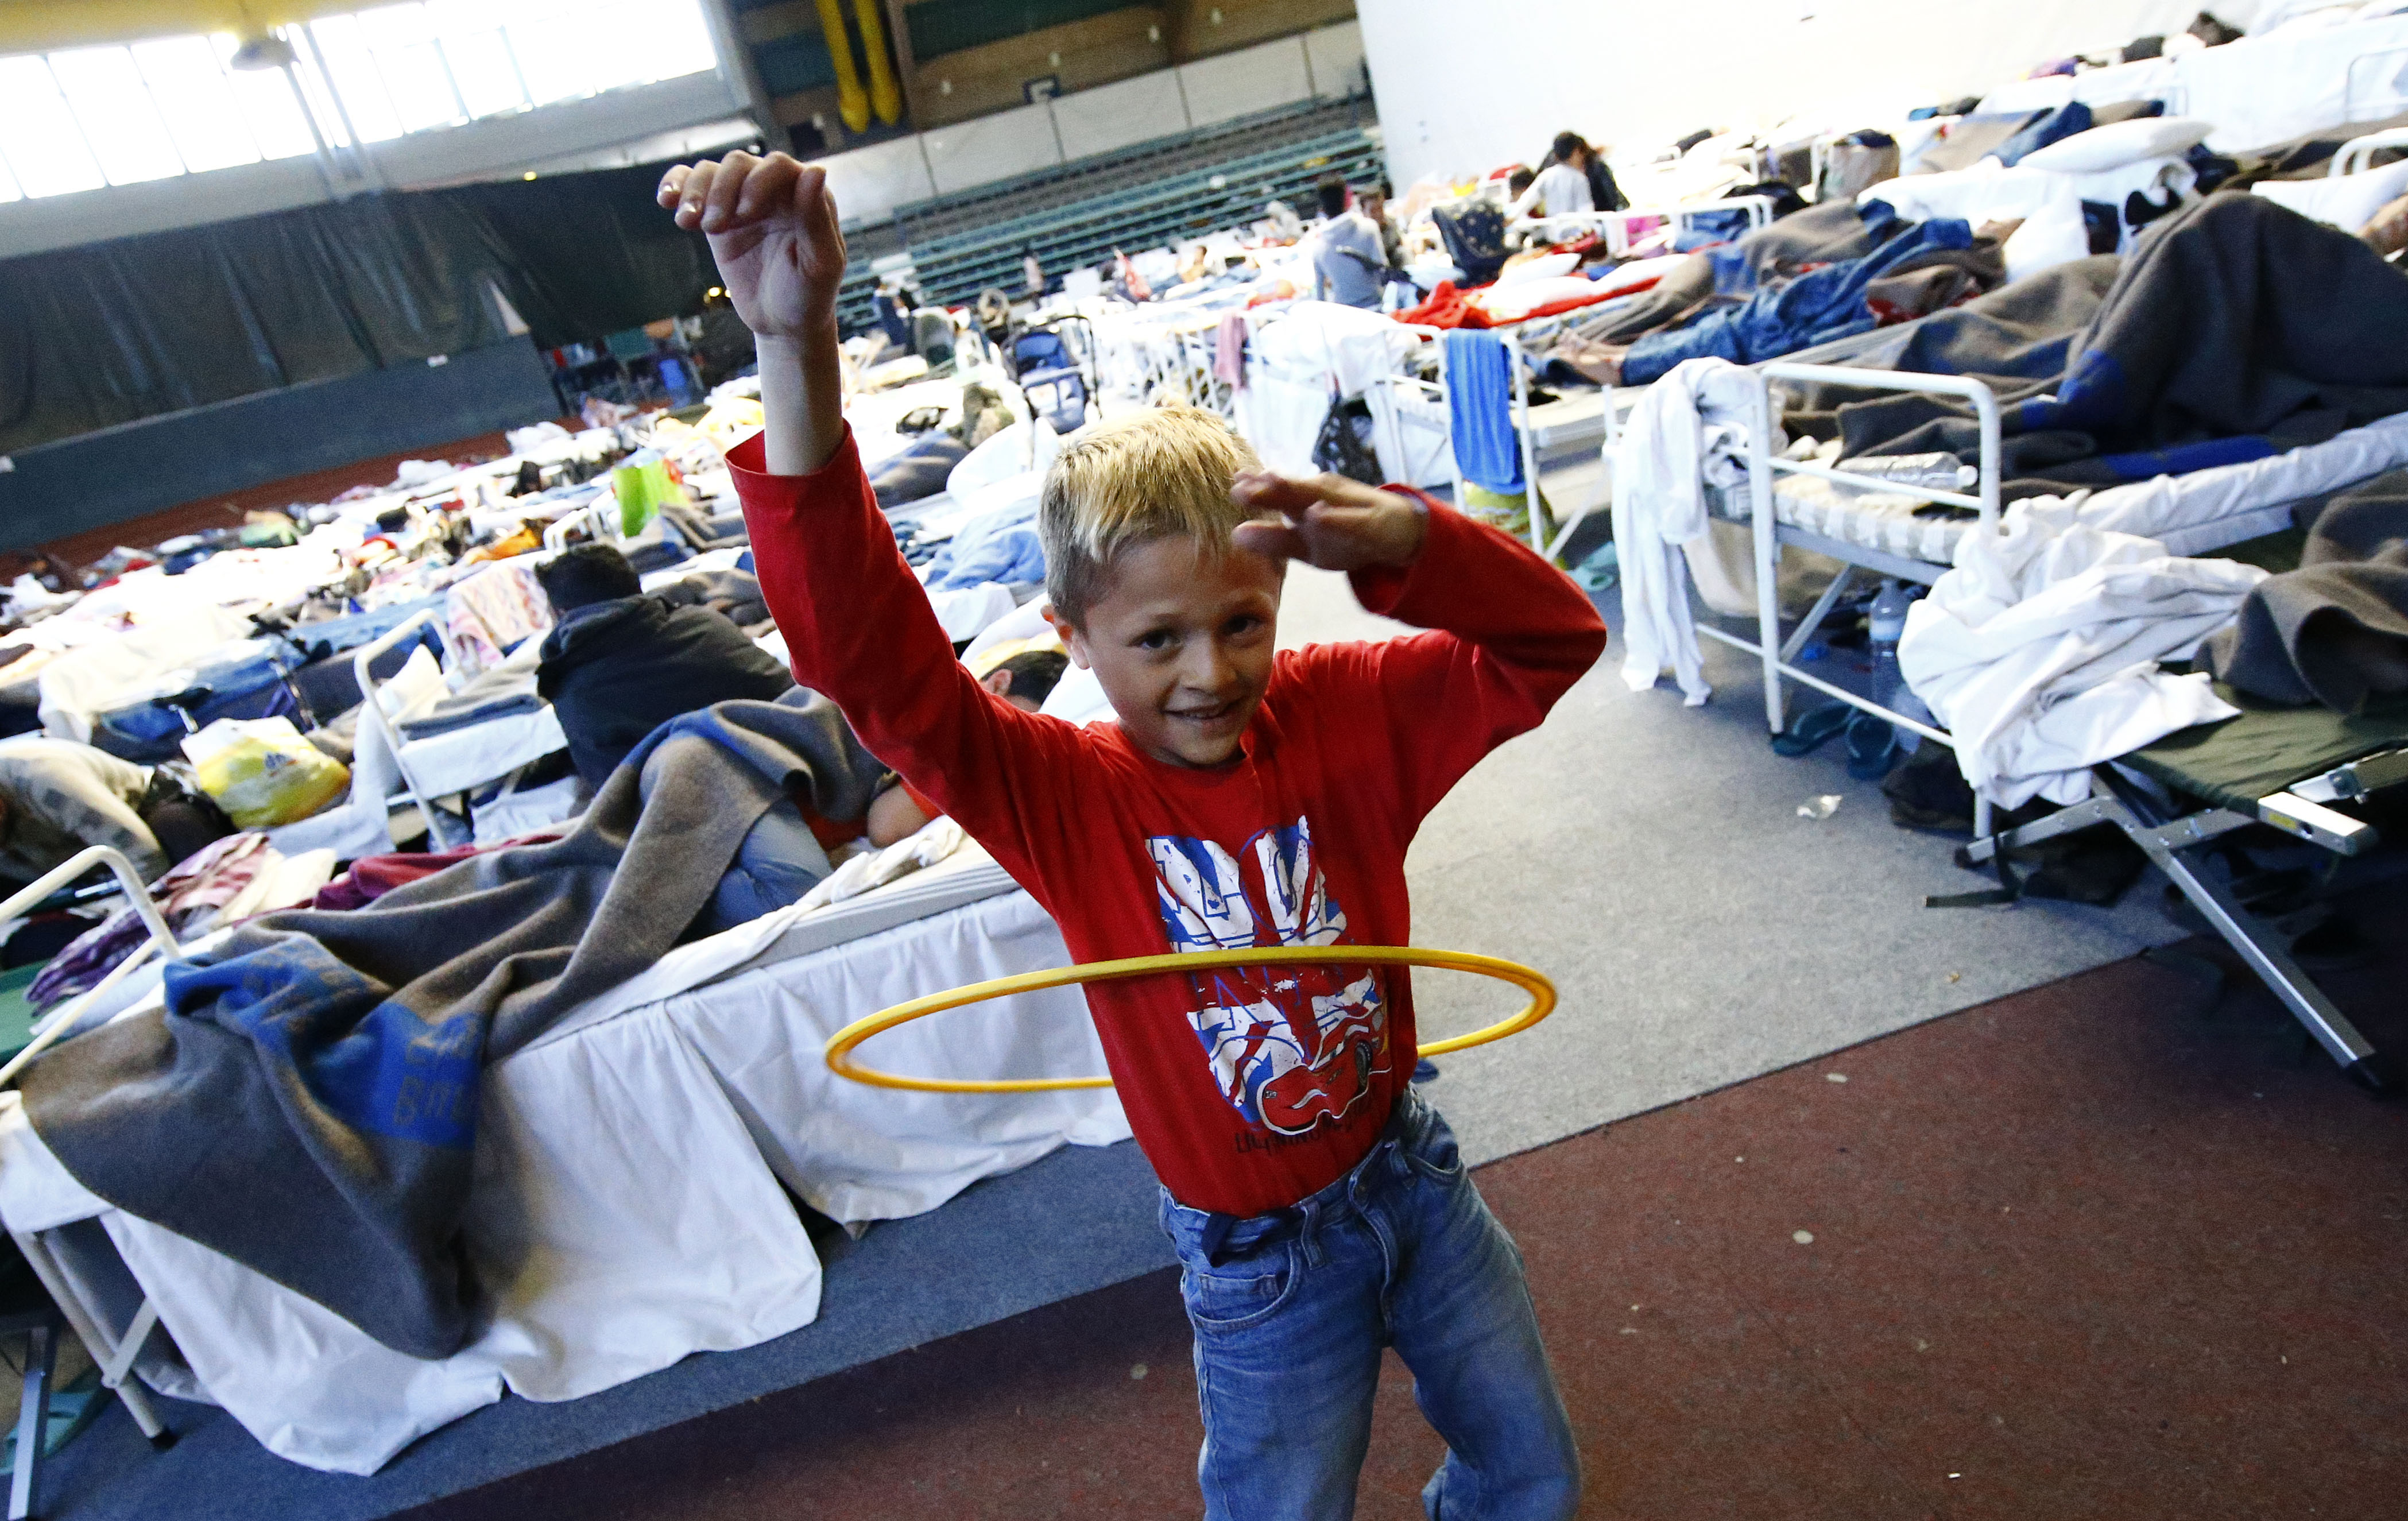 A child plays with a hoola hoop at a temporary shelter in a sports hall in Hanau, Germany, on Oct. 1, 2015. Photo by Kai Pfaffenbach/Reuters